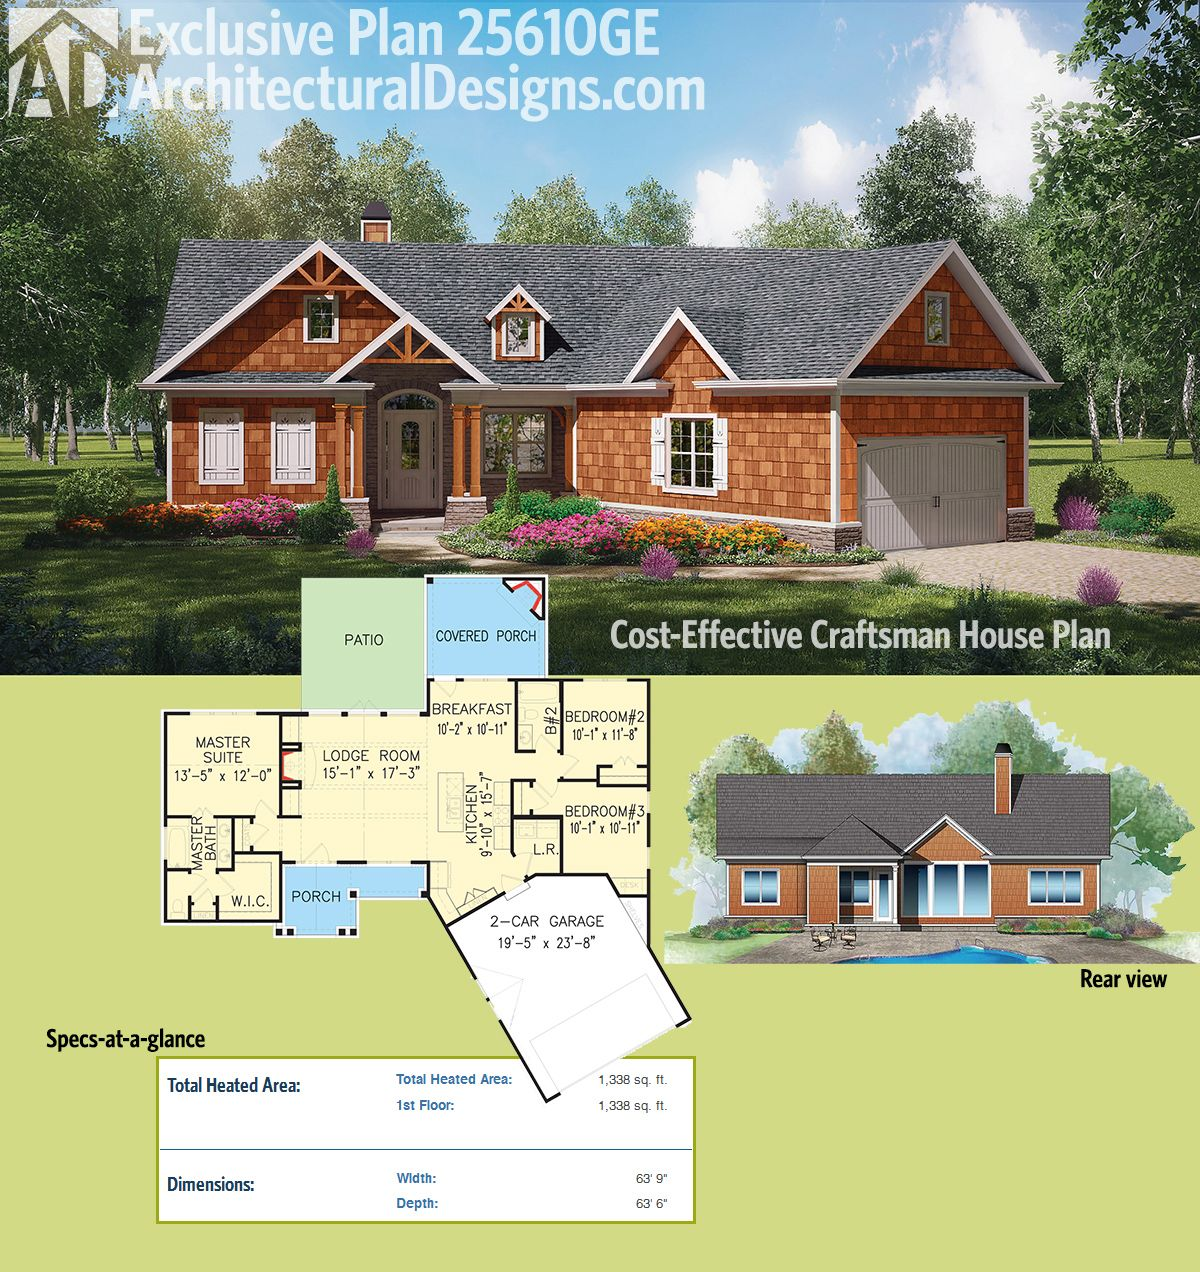 Craftsman home plans cost to build for Average cost to build a craftsman style home